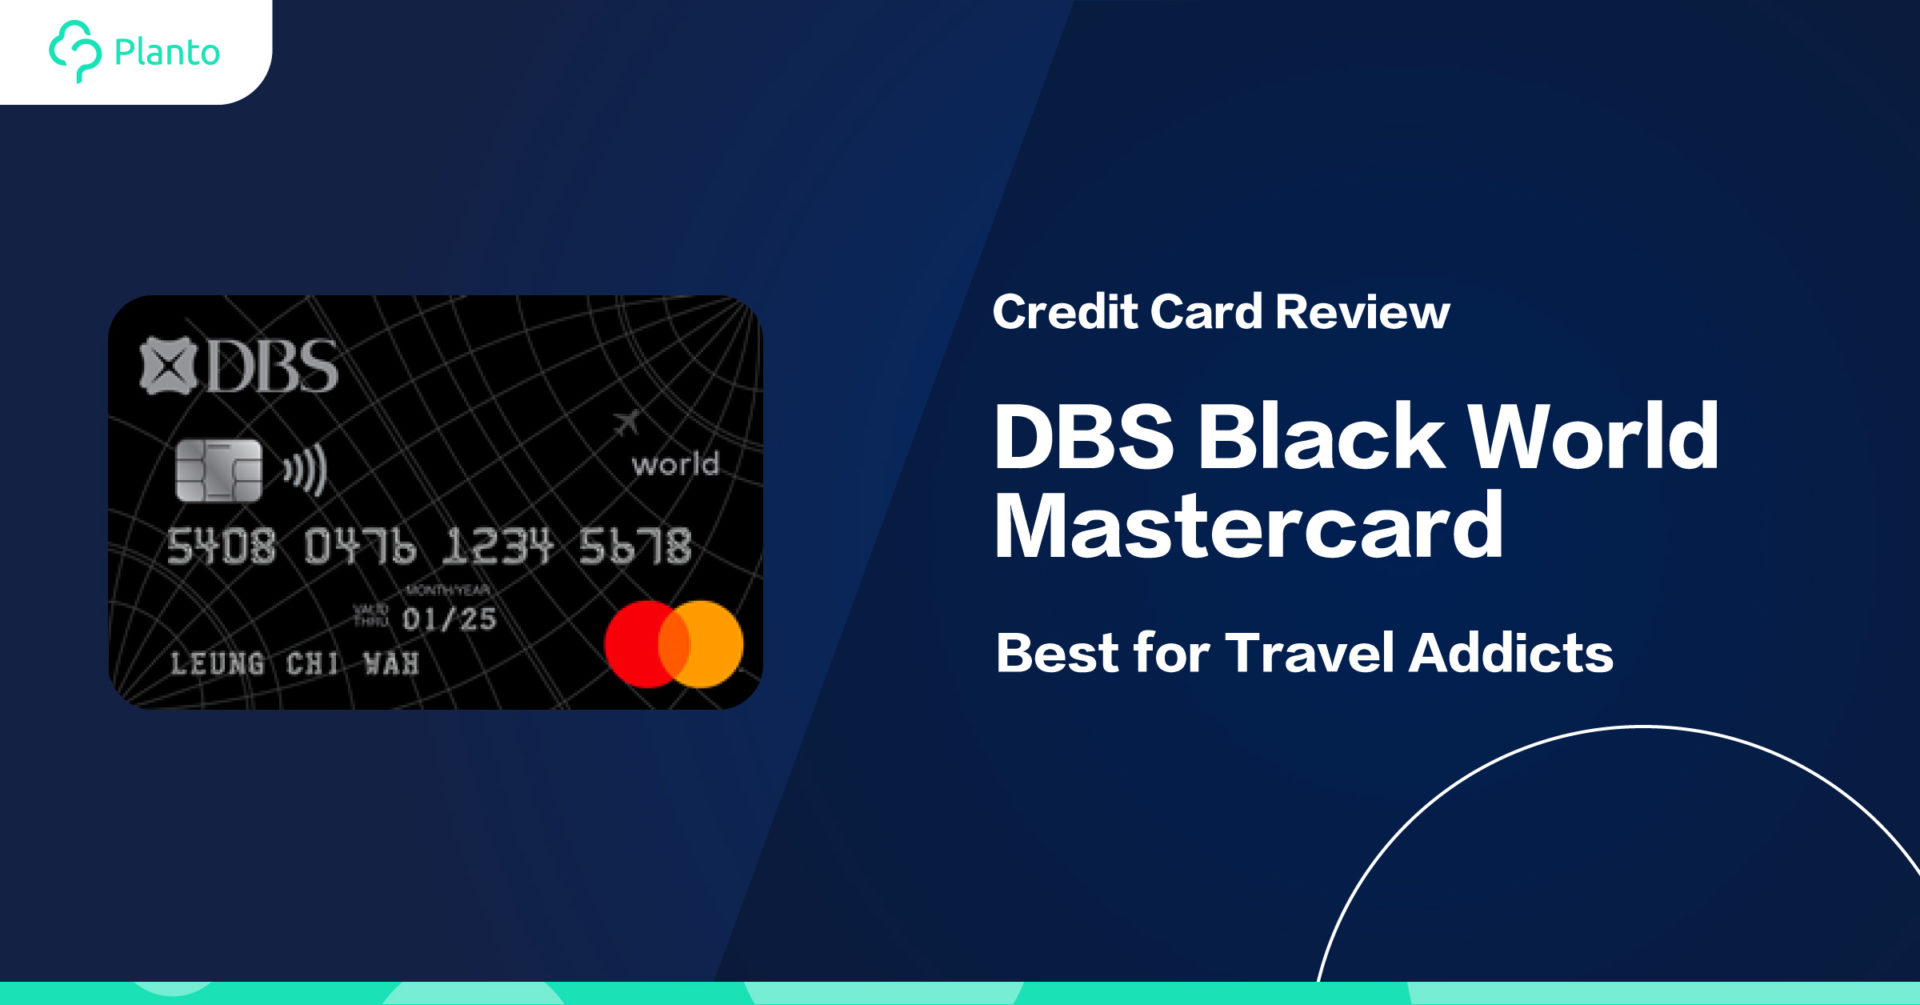 [Credit Card Review] DBS Black World Mastercard: Best for Travel Addicts